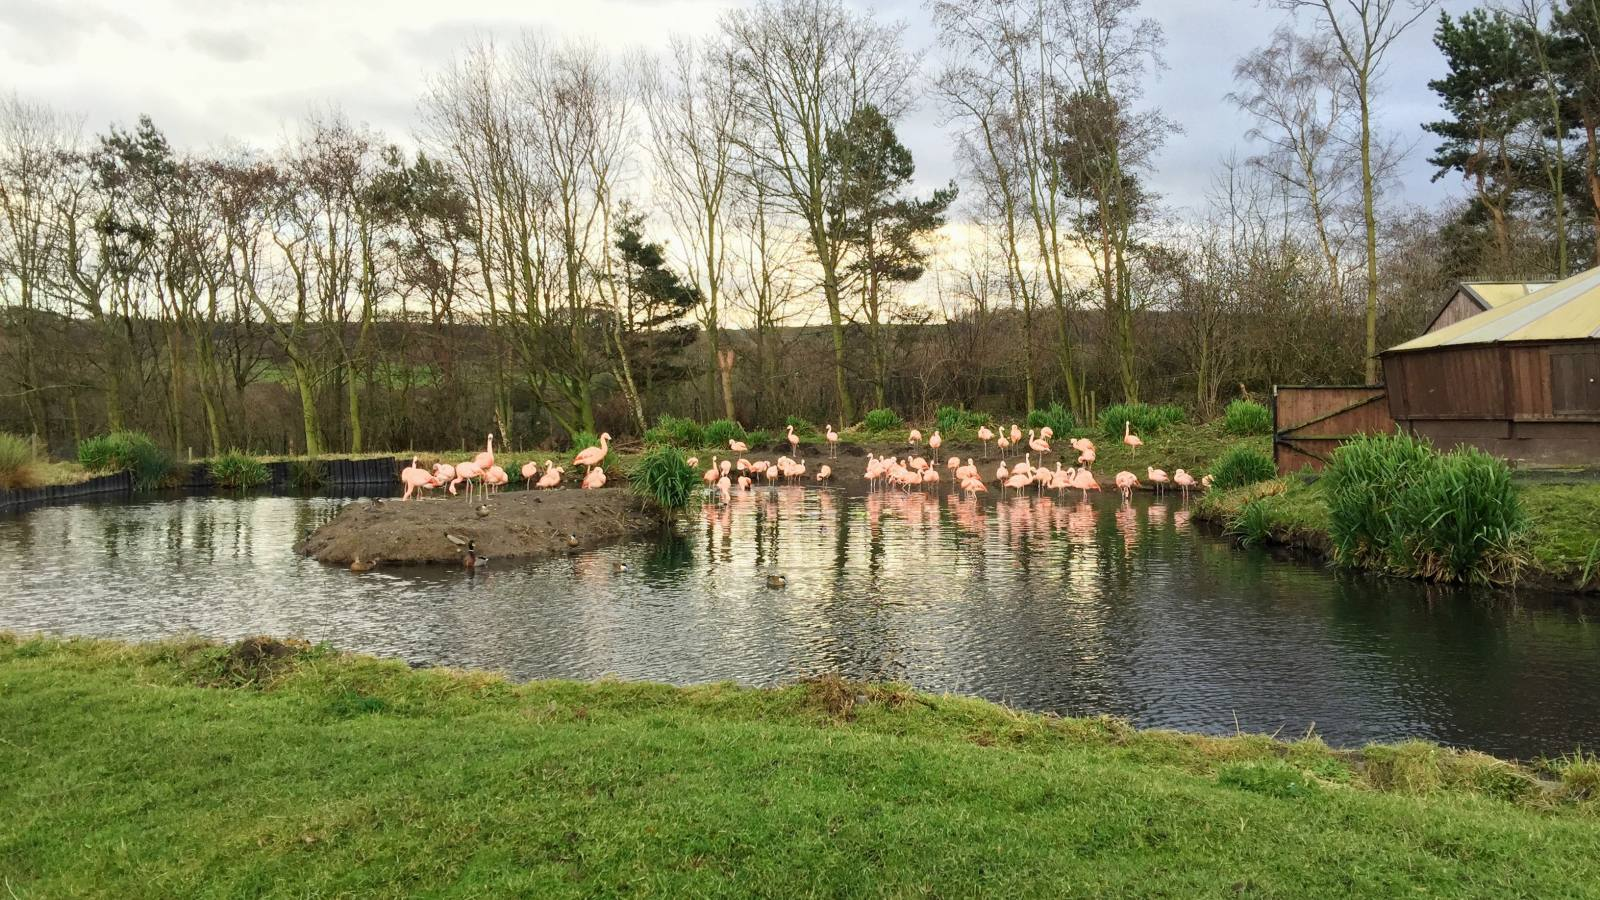 Washington Wetlands has a colony of flamingos